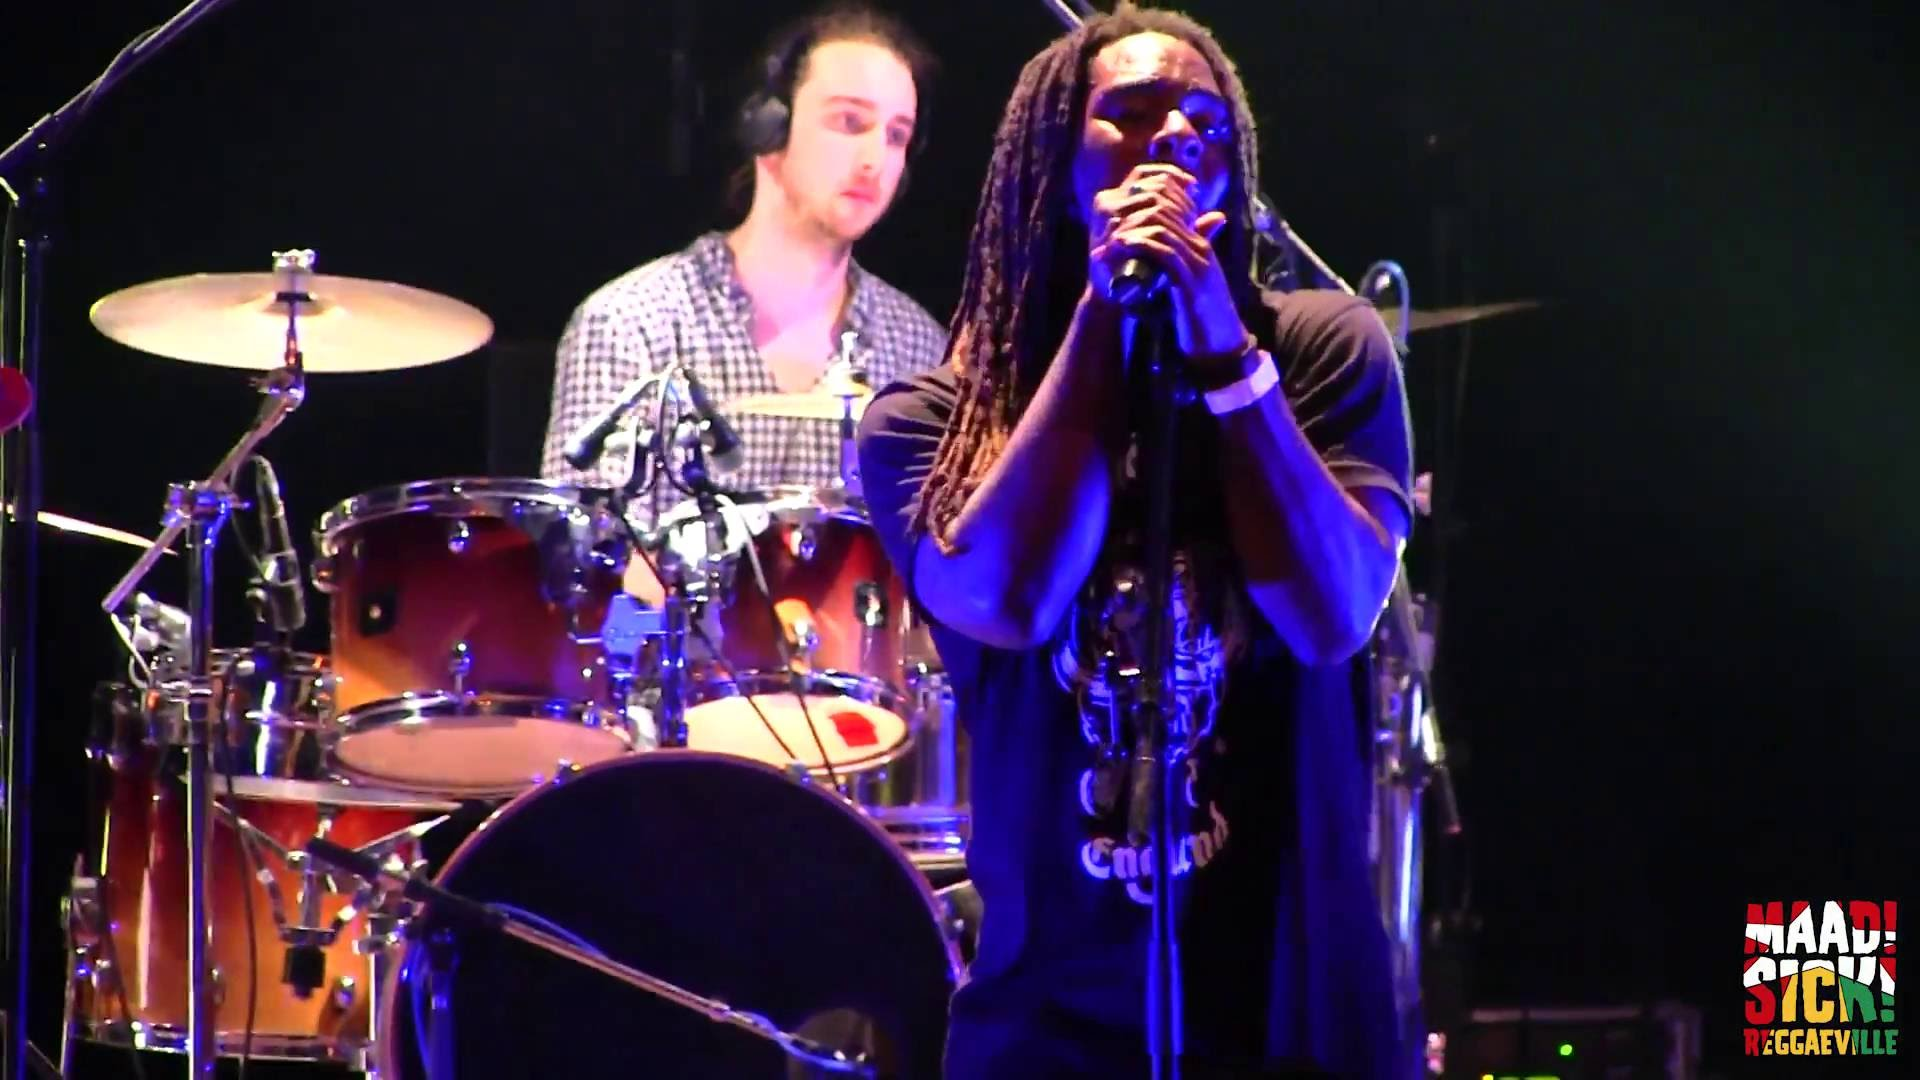 Daniel Bambaata Marley - High Of You @ Rototom & Friends - Zurich 2016 [5/7/2016]